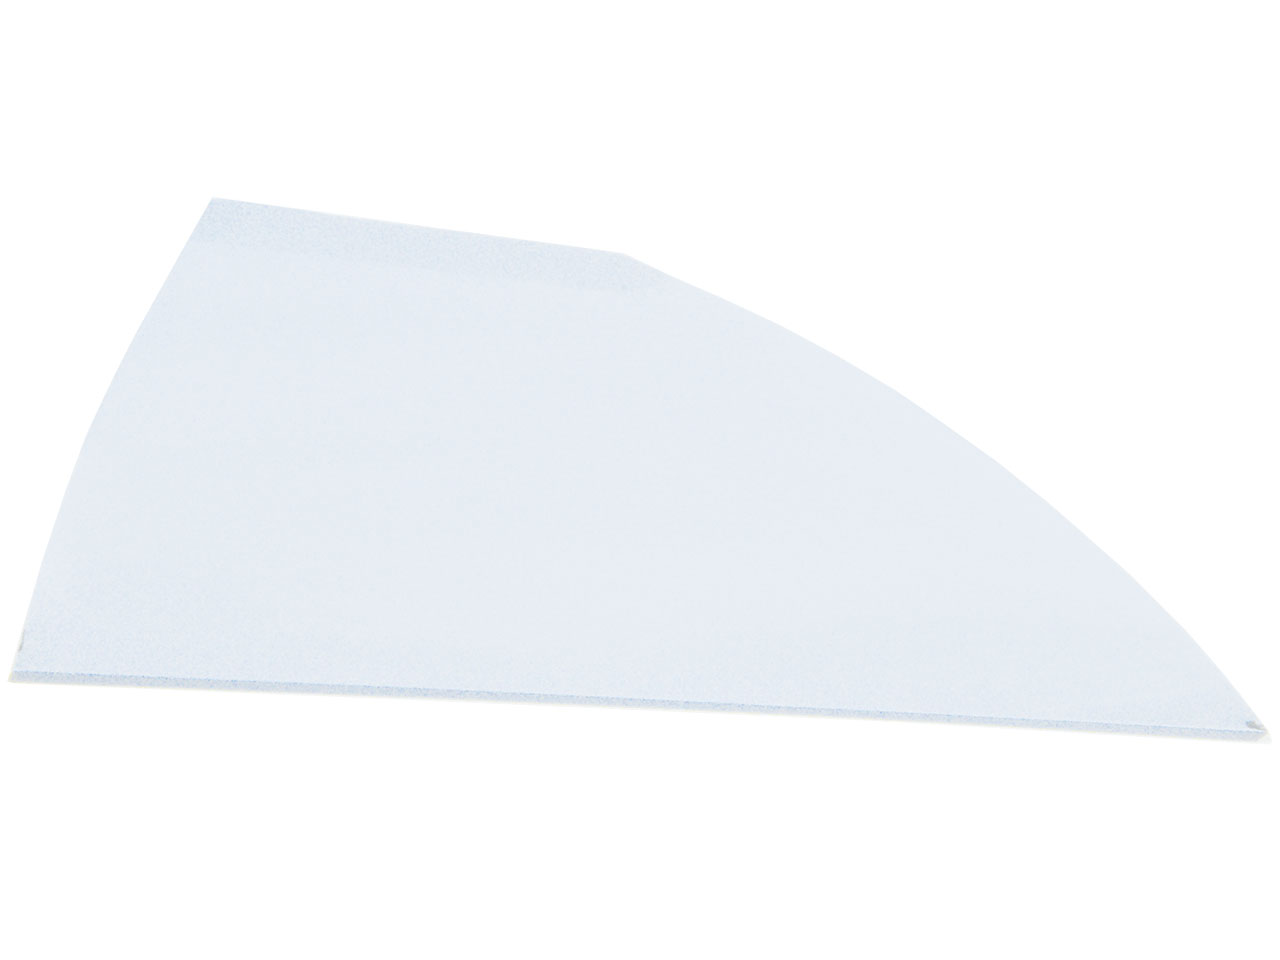 Late Model Left Side Solid Rear Roof Post - (White)